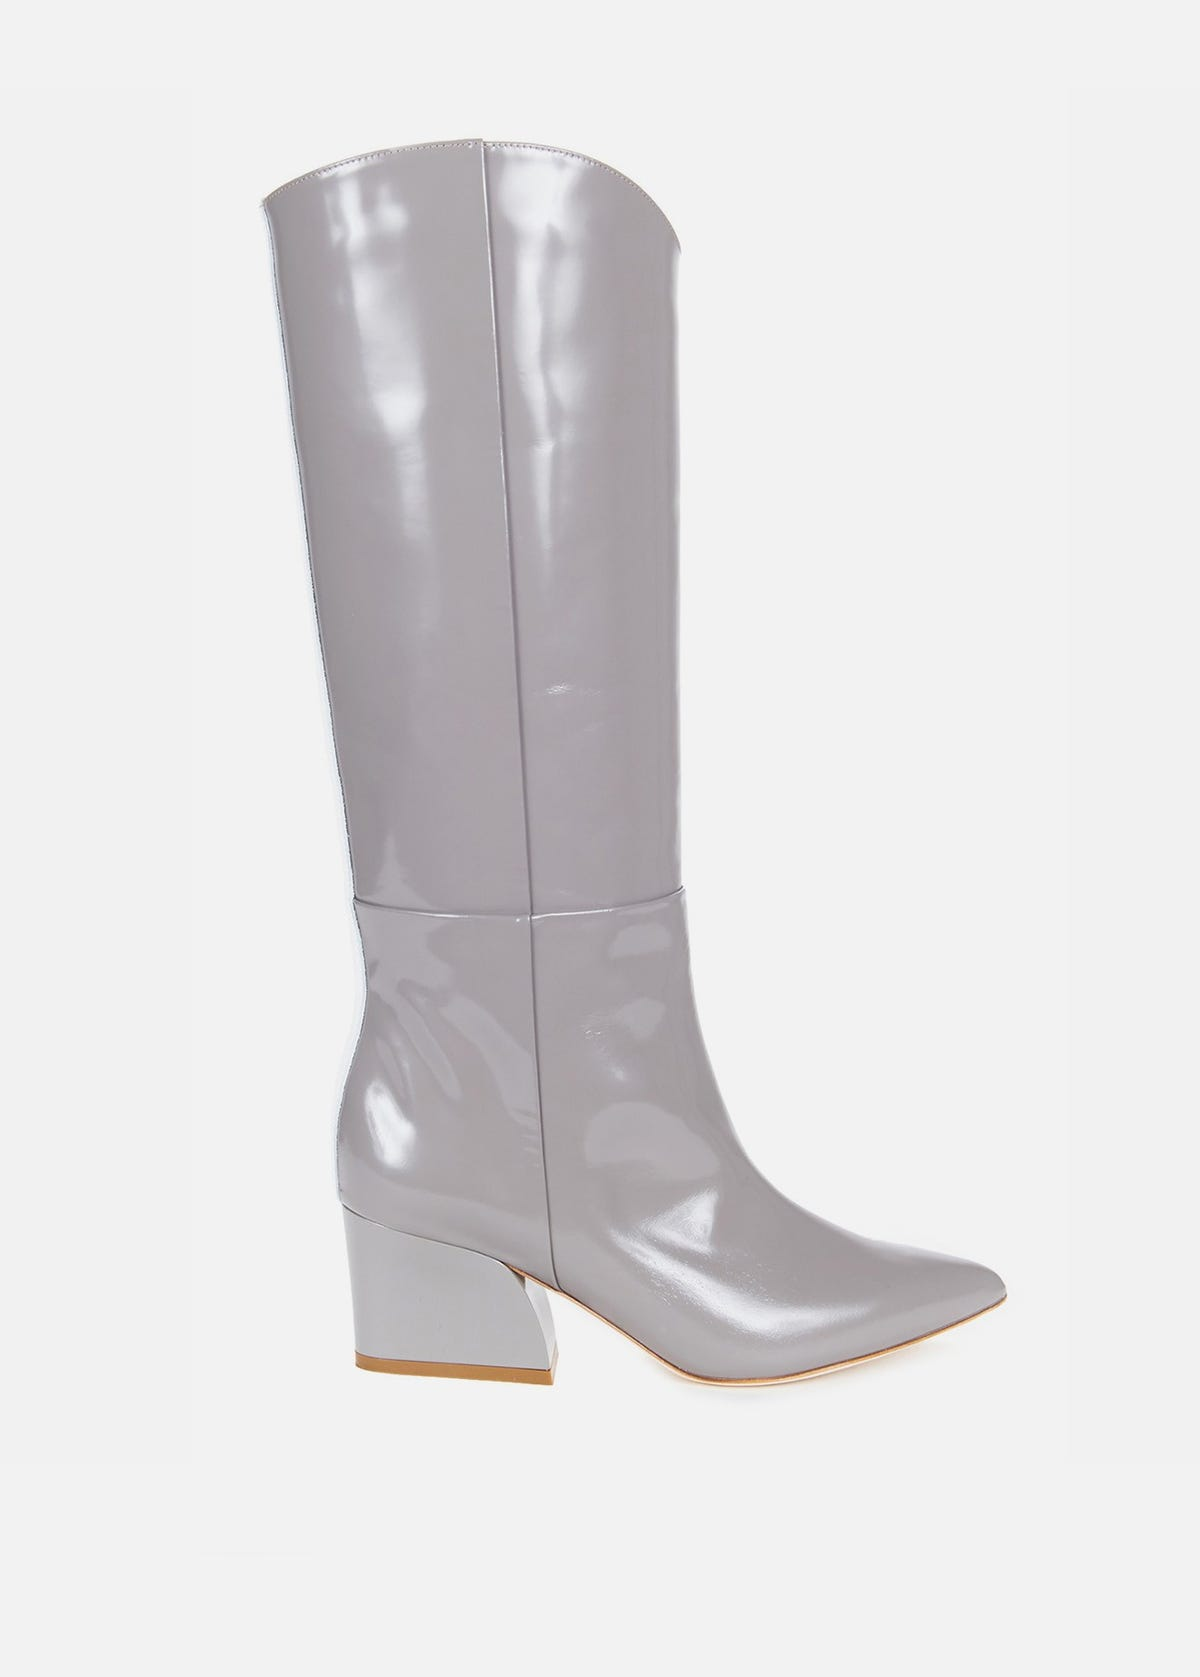 d541db048deb Womens Boots Trends - Best Winter 2019 Boot Styles